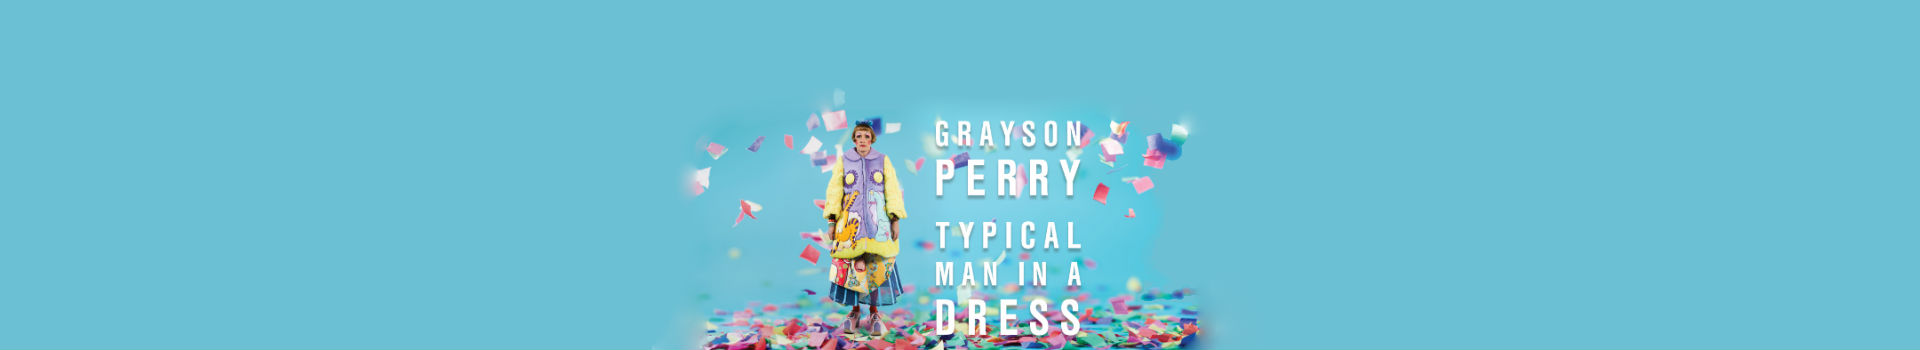 Grayson Perry – Typical Man in a Dress banner image